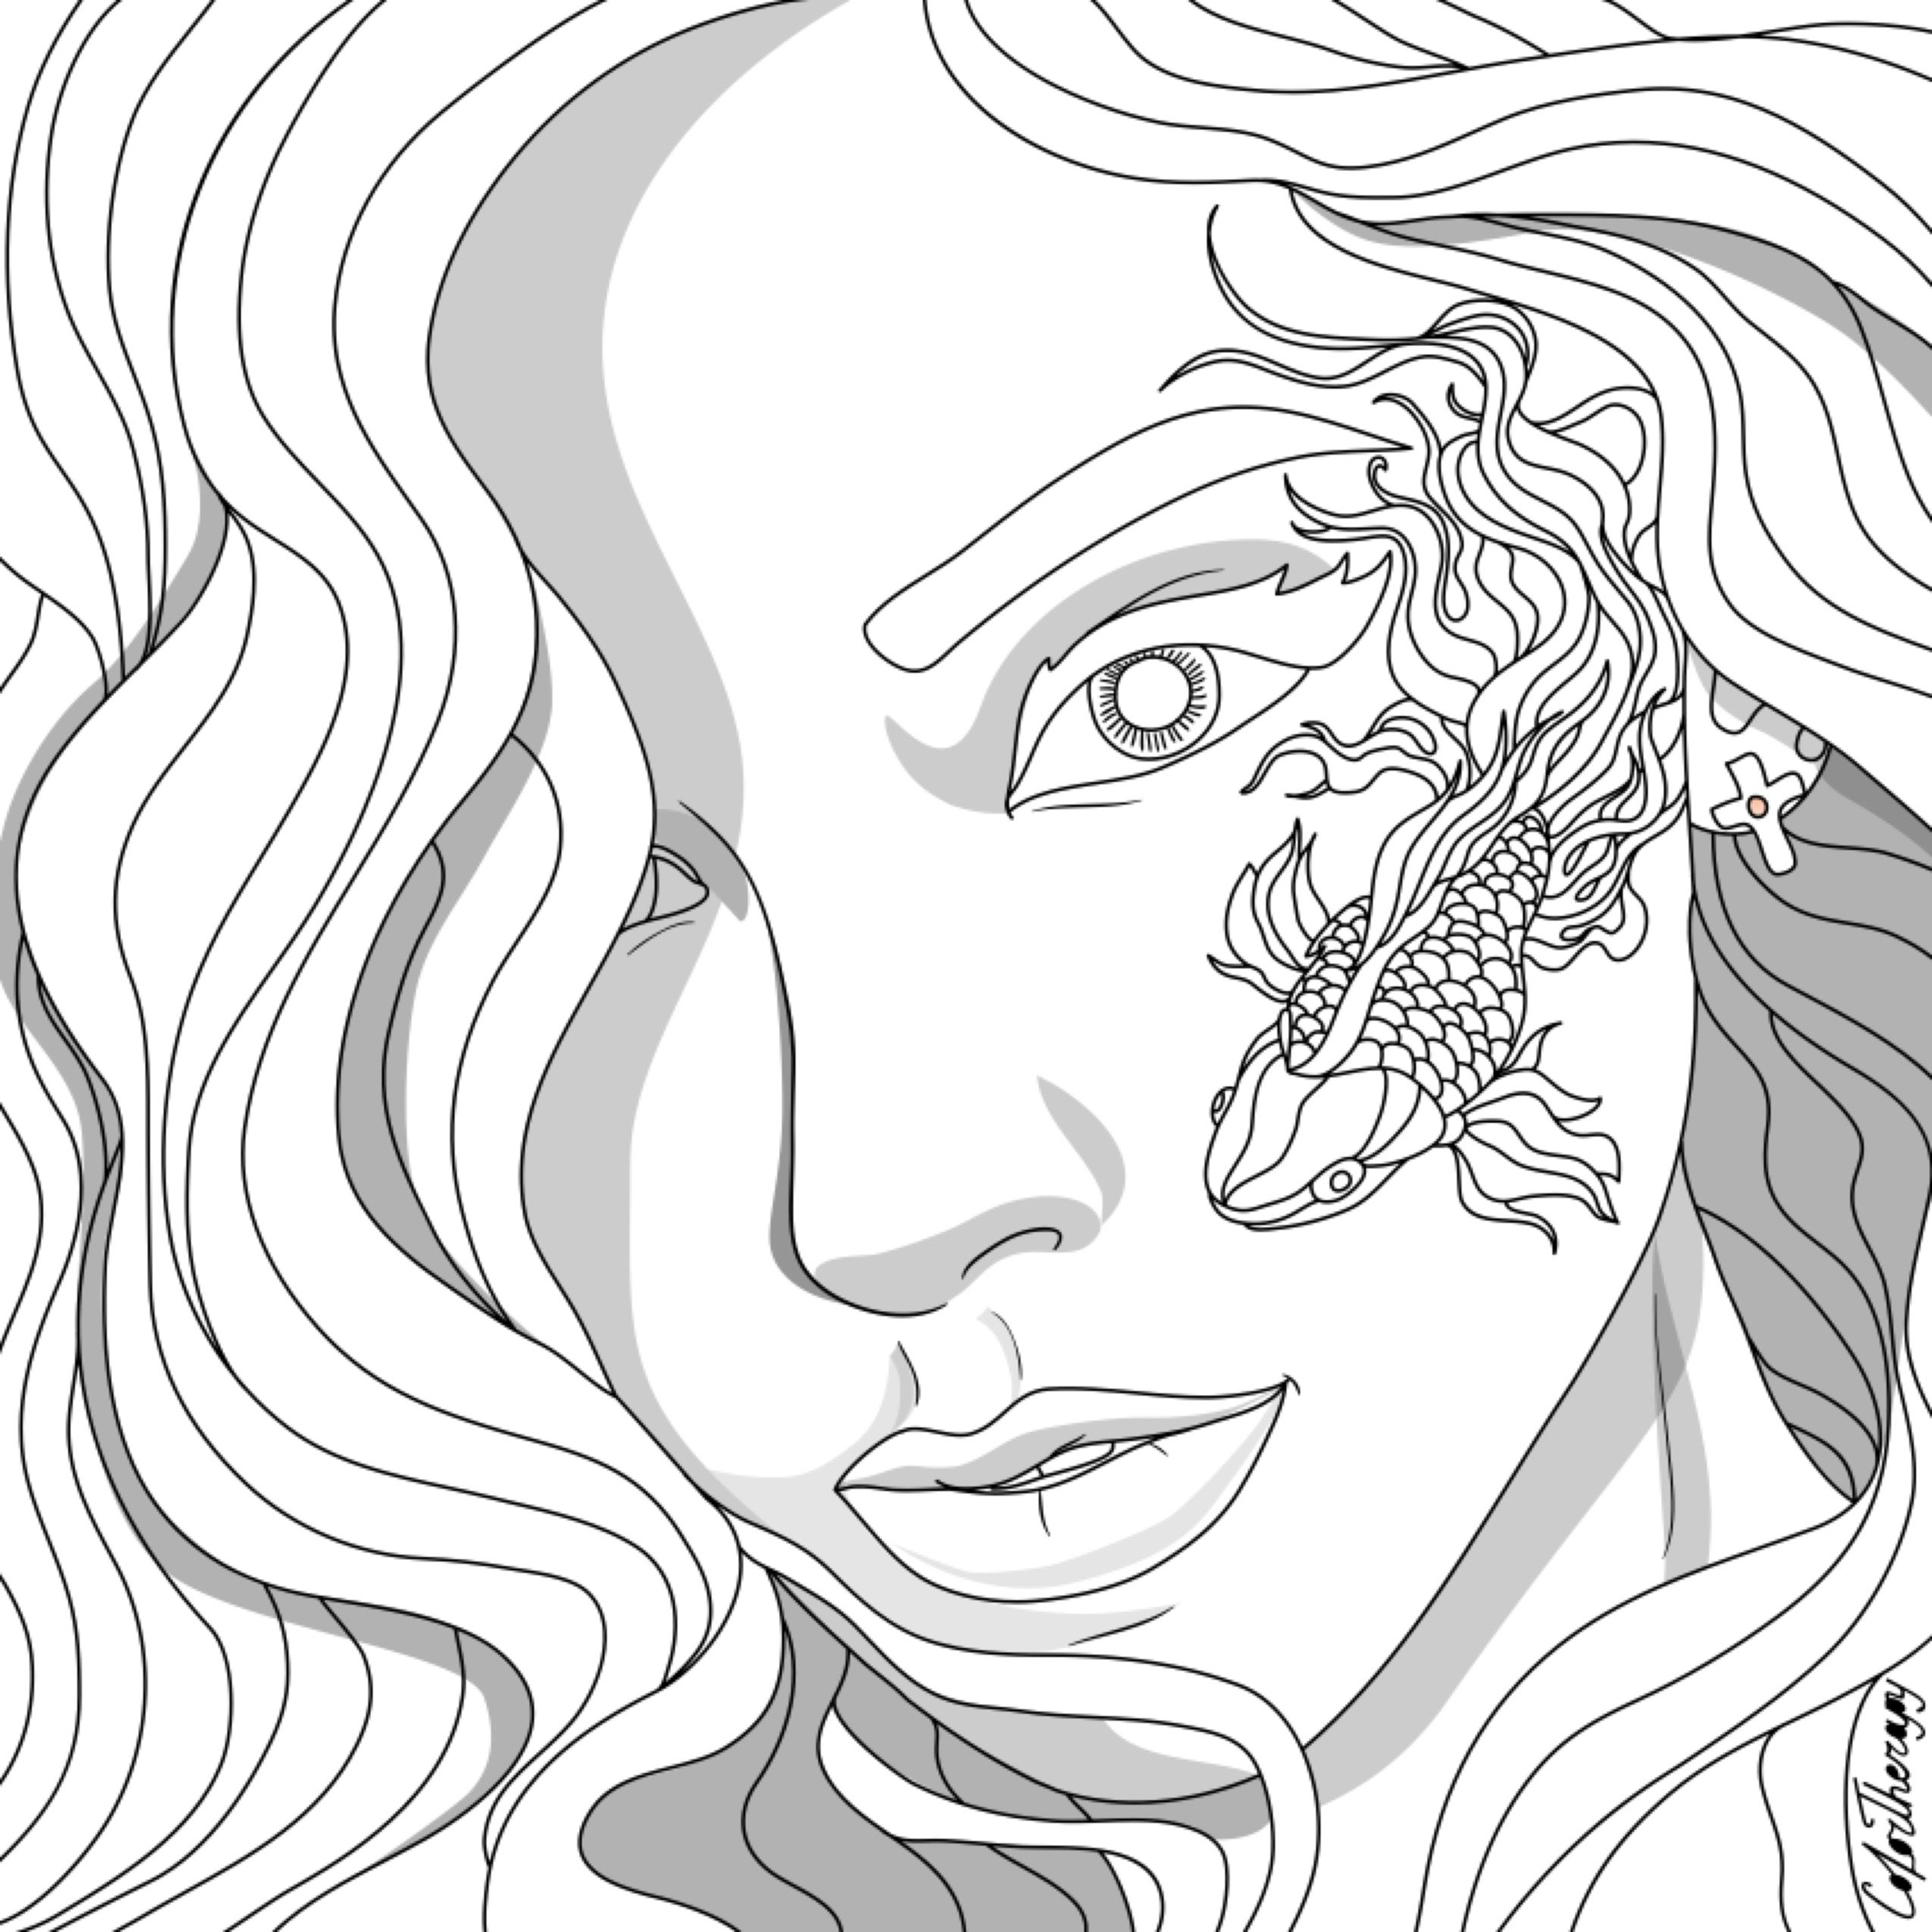 Pin by Nupur Bhatnagar on Devian Art  Coloring pictures, Coloring